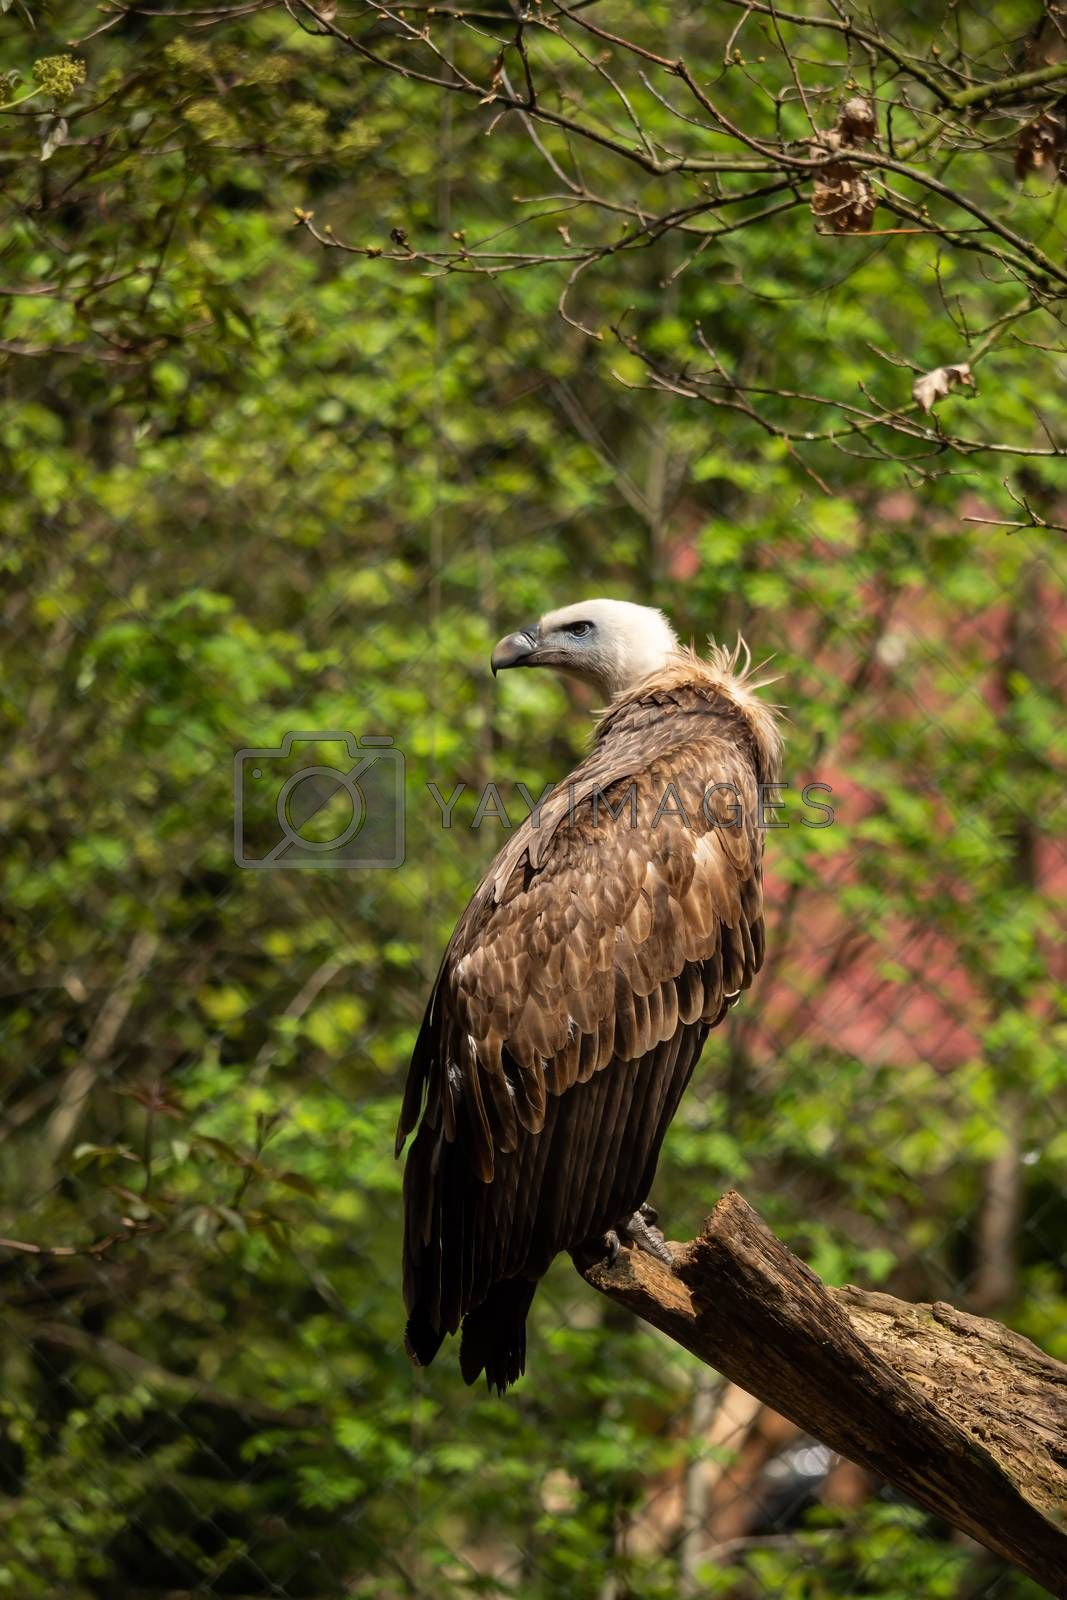 A griffon vulture in the enclosure on a branch by Sandra Fotodesign